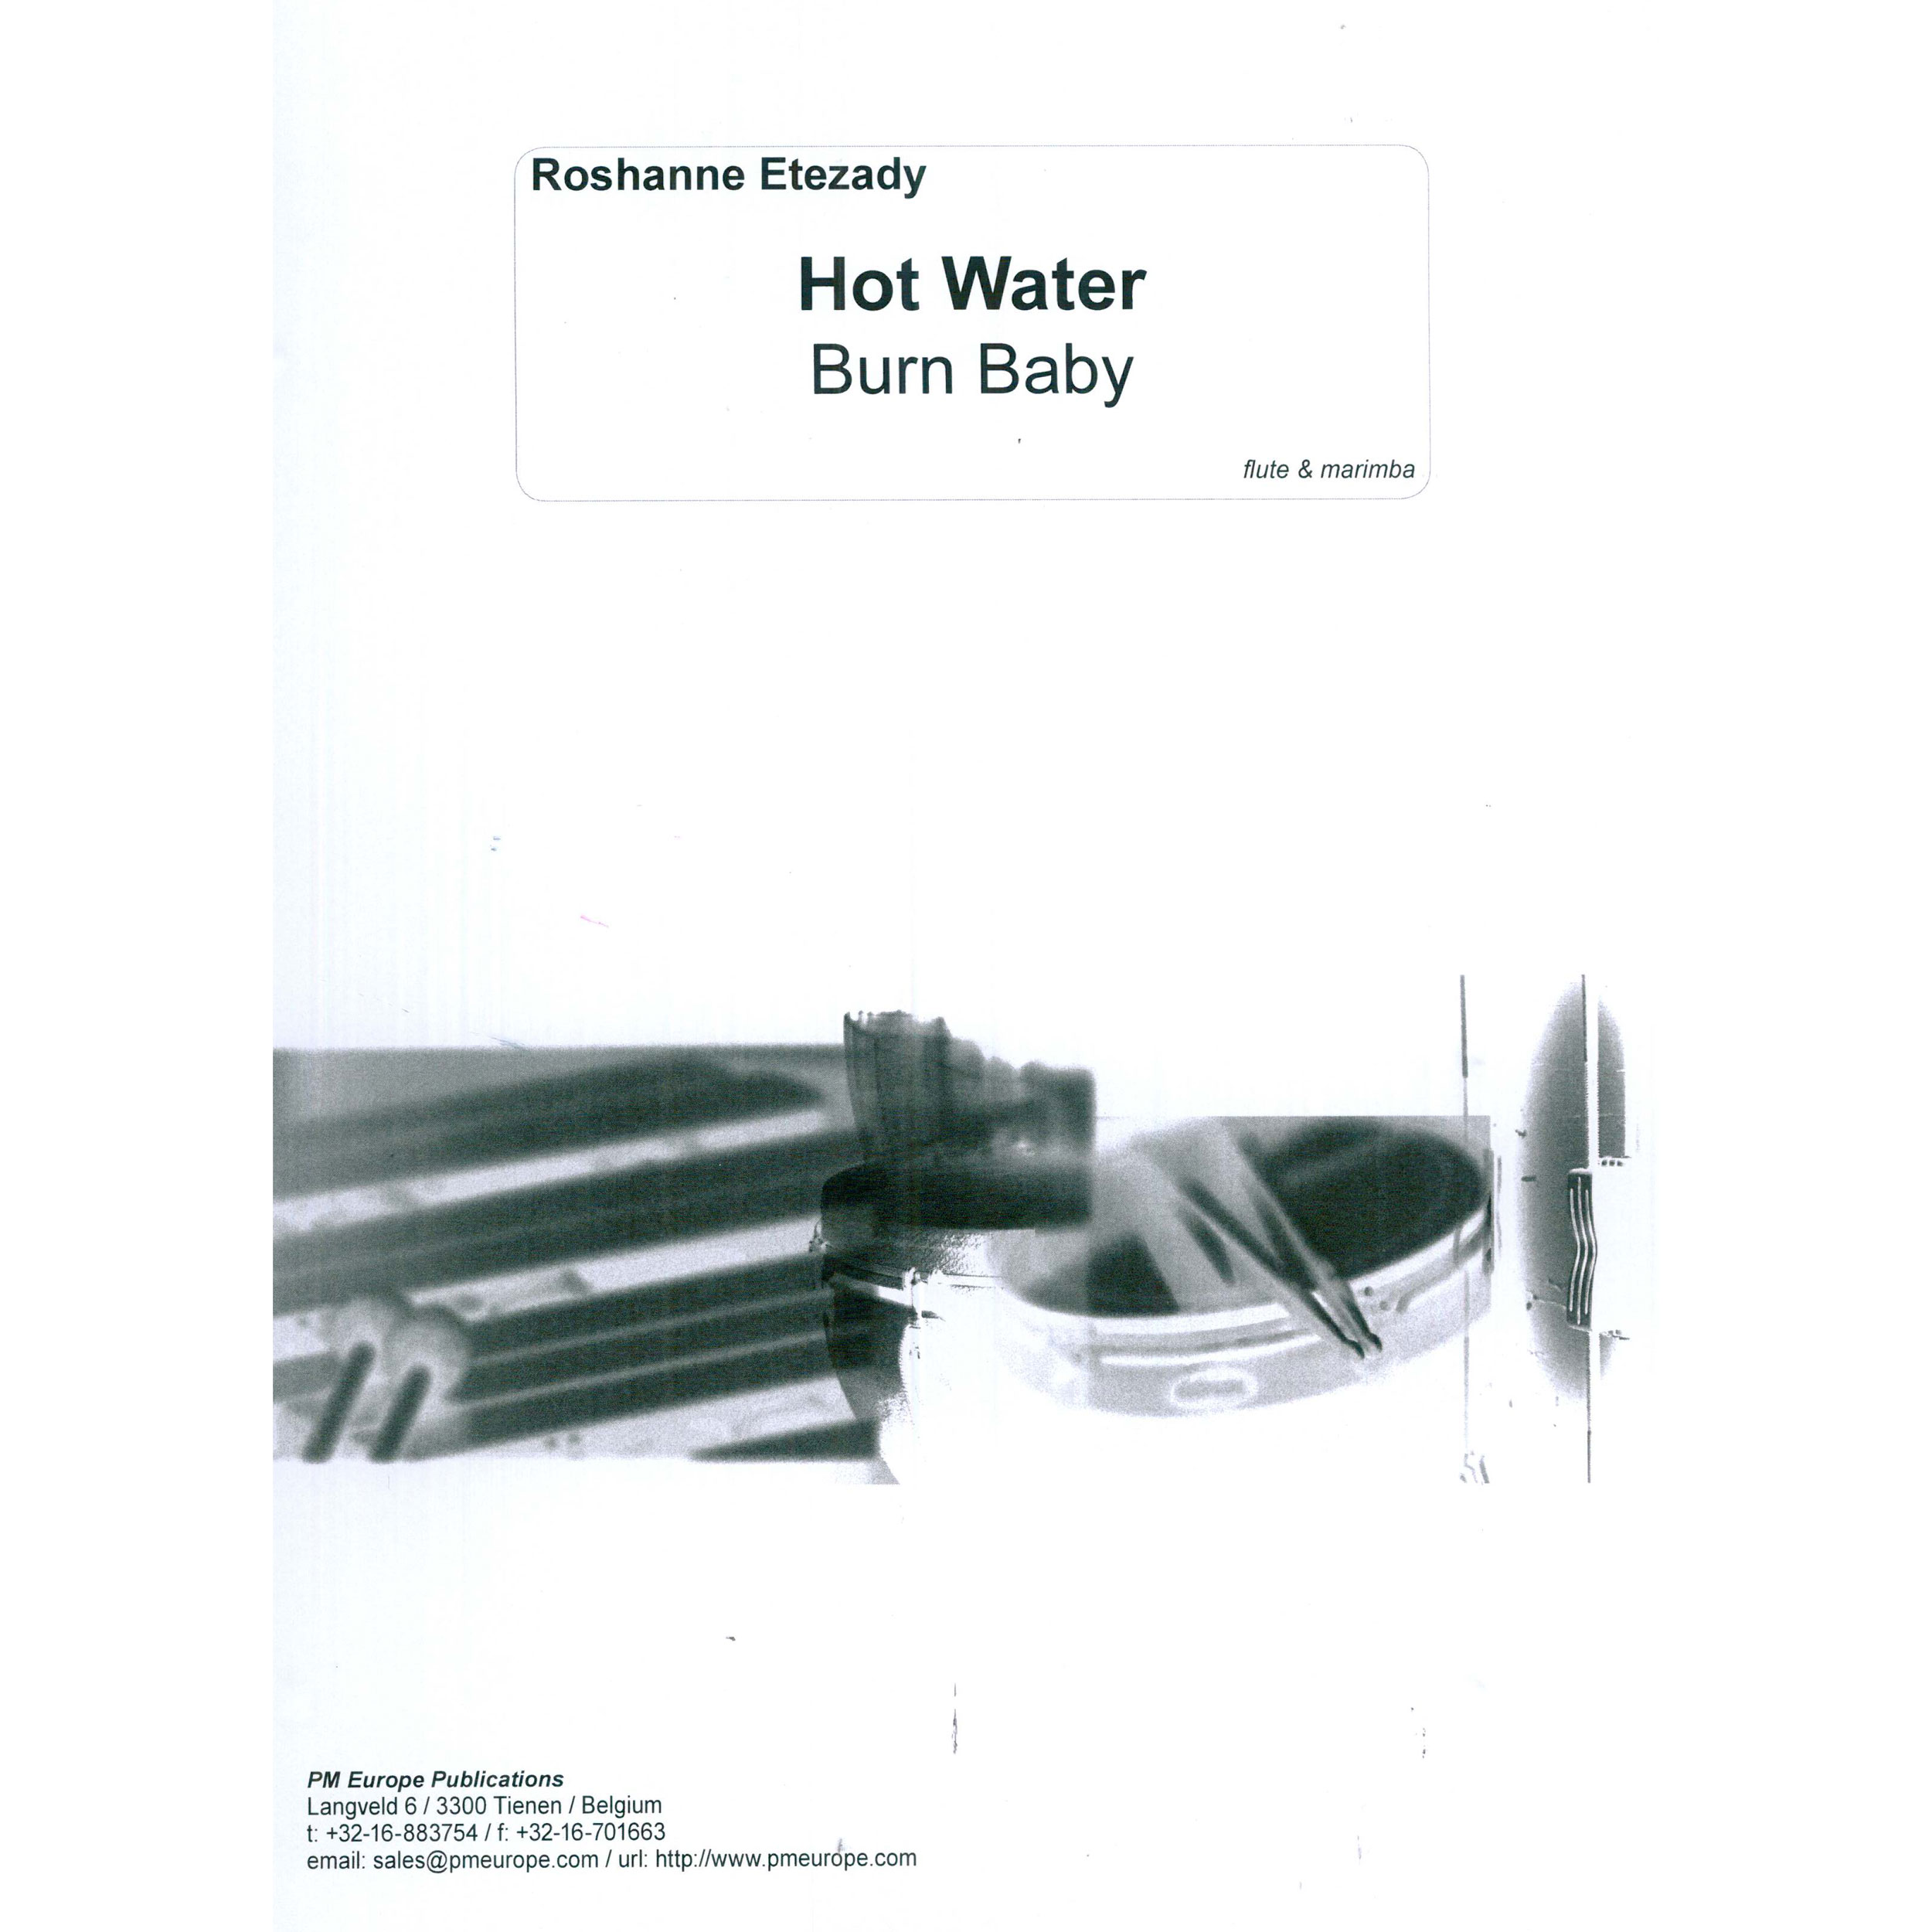 Hot Water, Burn Baby by Roshanne Etezady